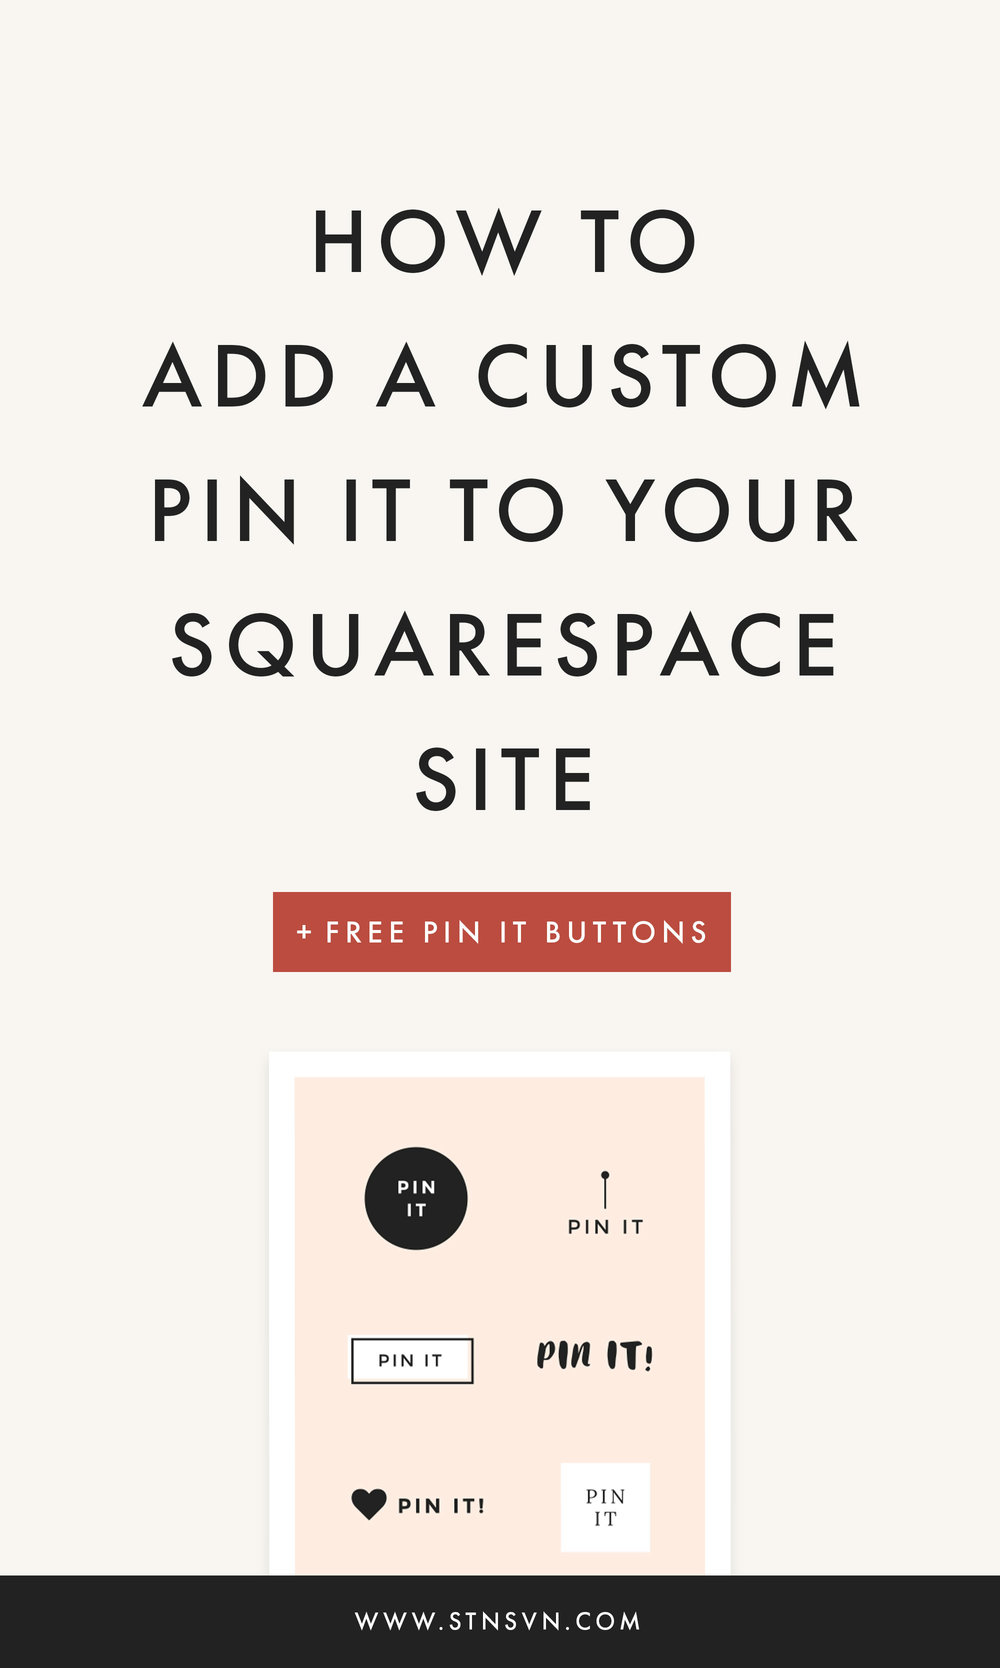 How to Add a Custom Pin It Button on Squarespace.jpg